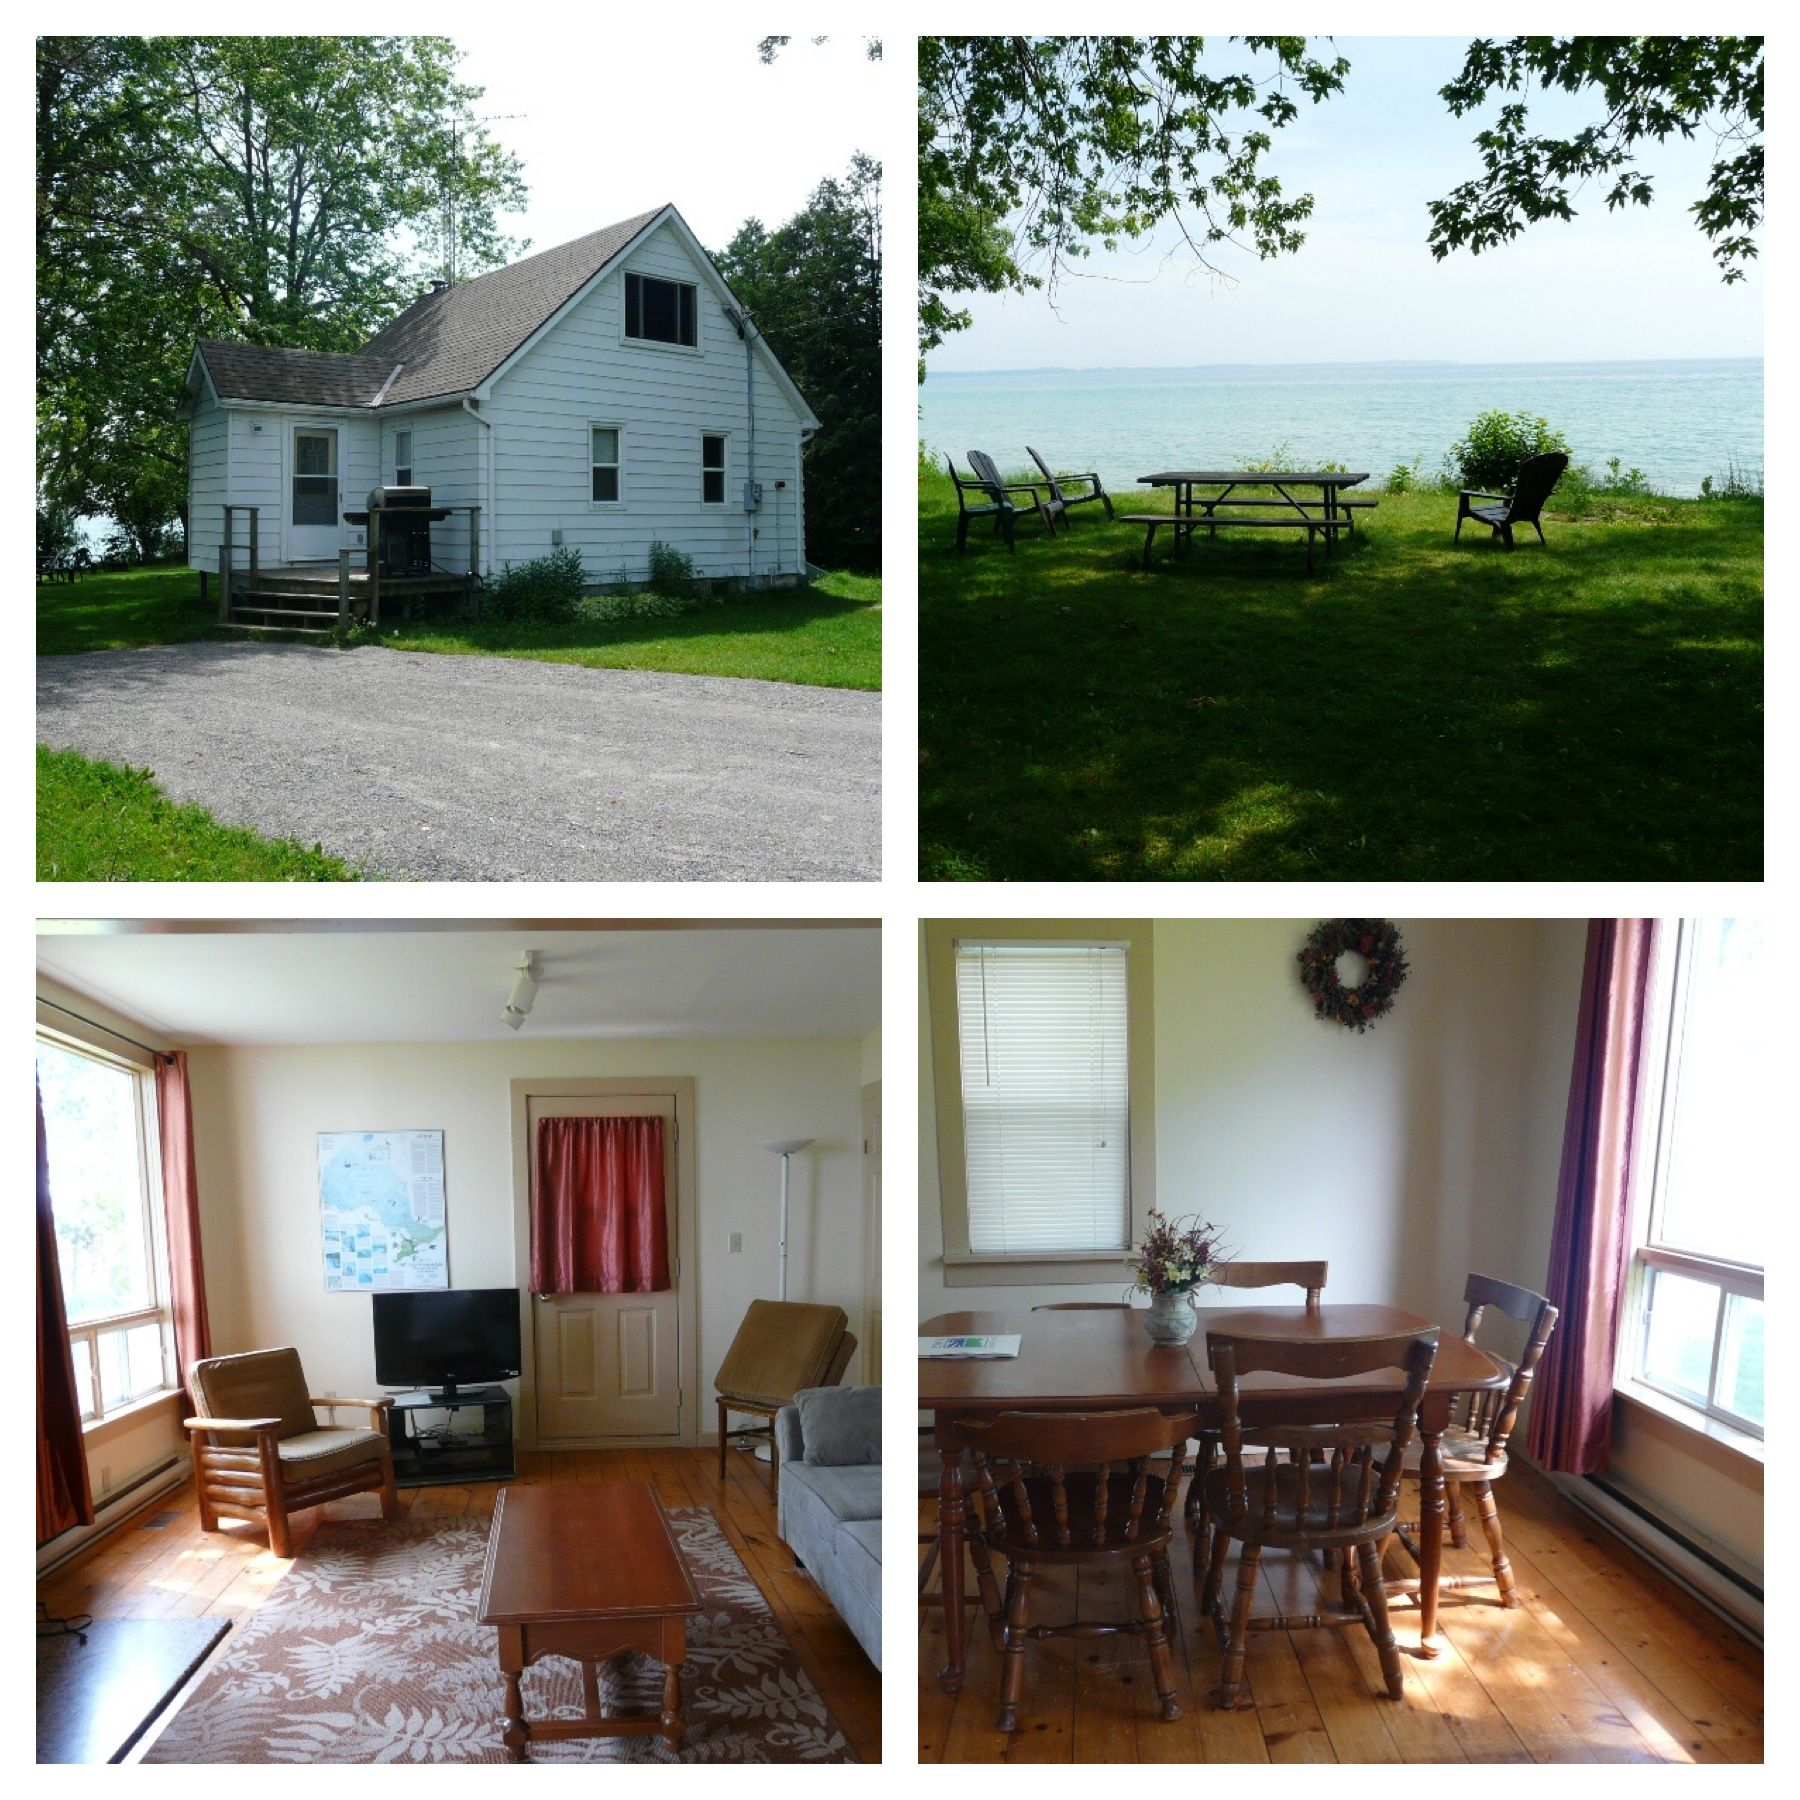 pin by albert on cars pinterest places to visit places and rh pinterest com cottages near sandbanks provincial park Sandbanks Provincial Park Ontario Canada